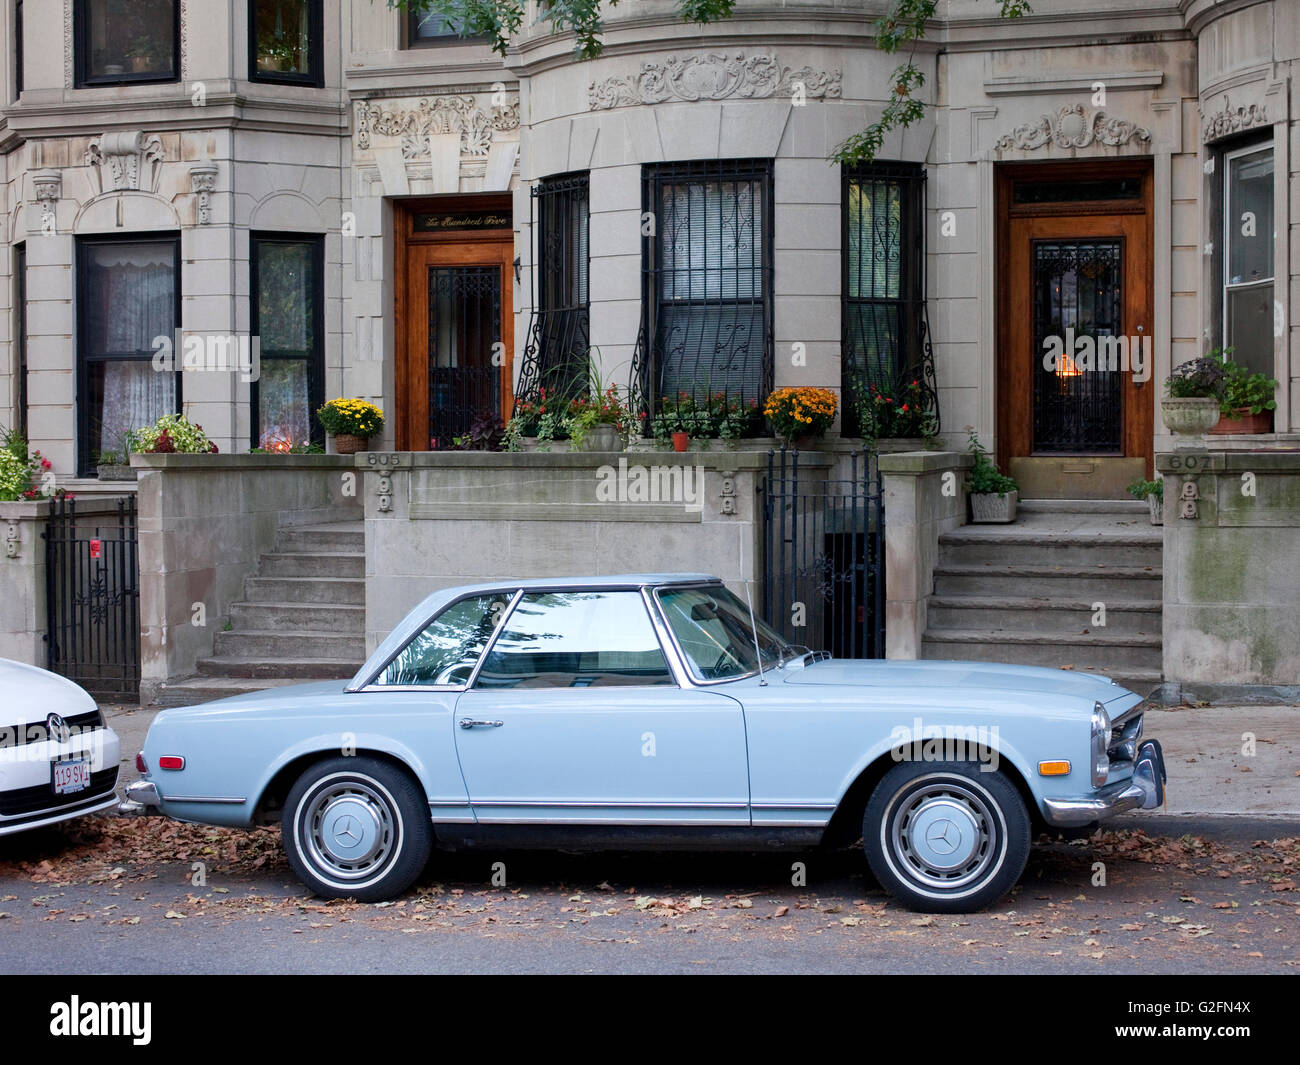 powder blue vintage mercedes parked on Brooklyn Street - Stock Image